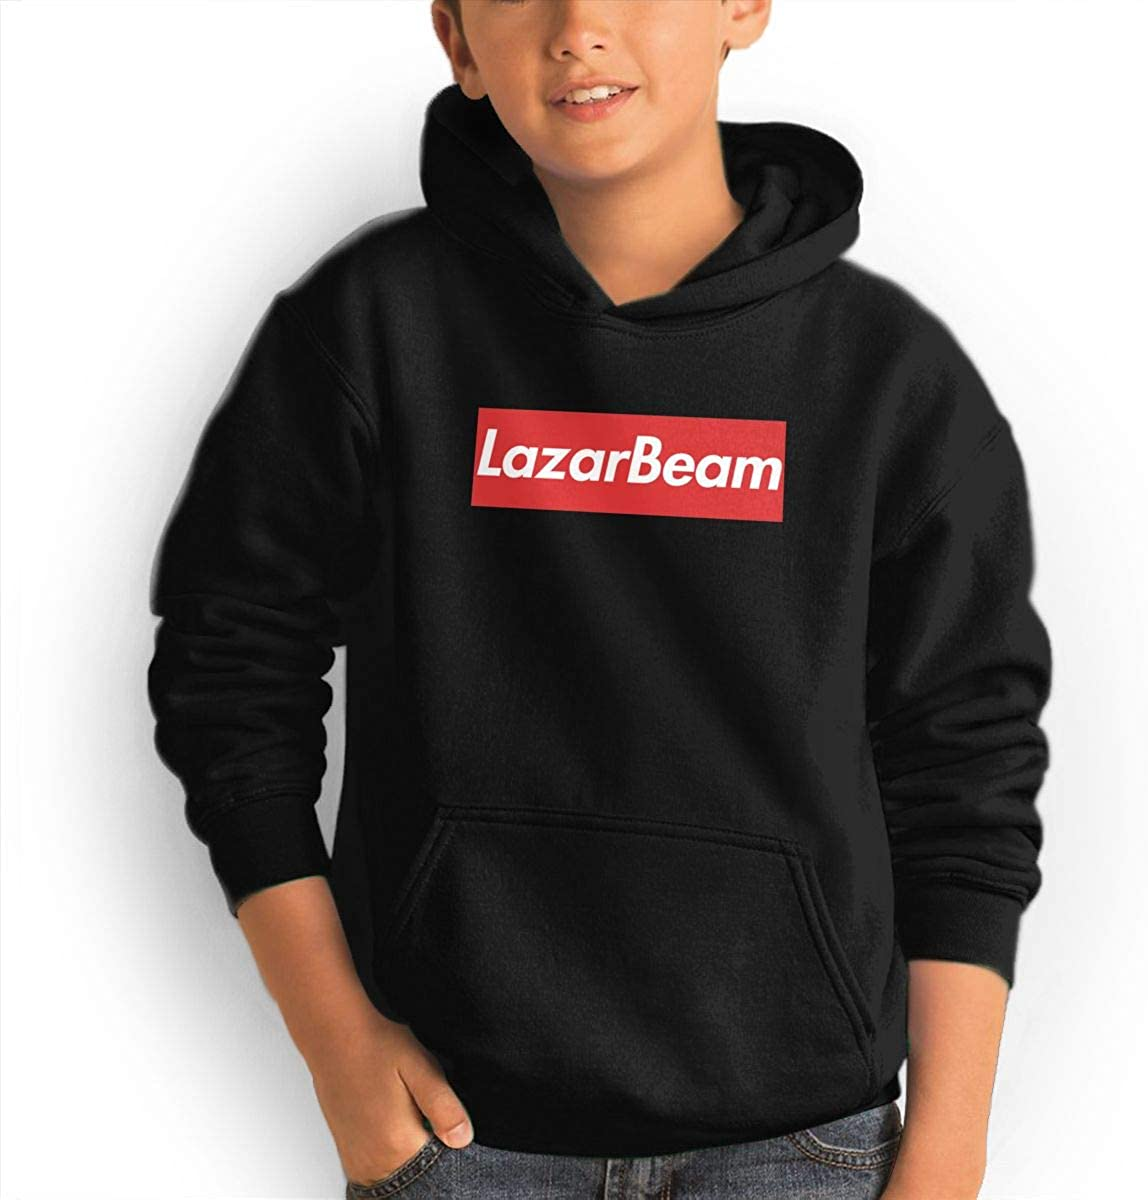 THORP.JENELLE Mens Fashion Lazar-Beam YouTube Top Sweater Hoodie